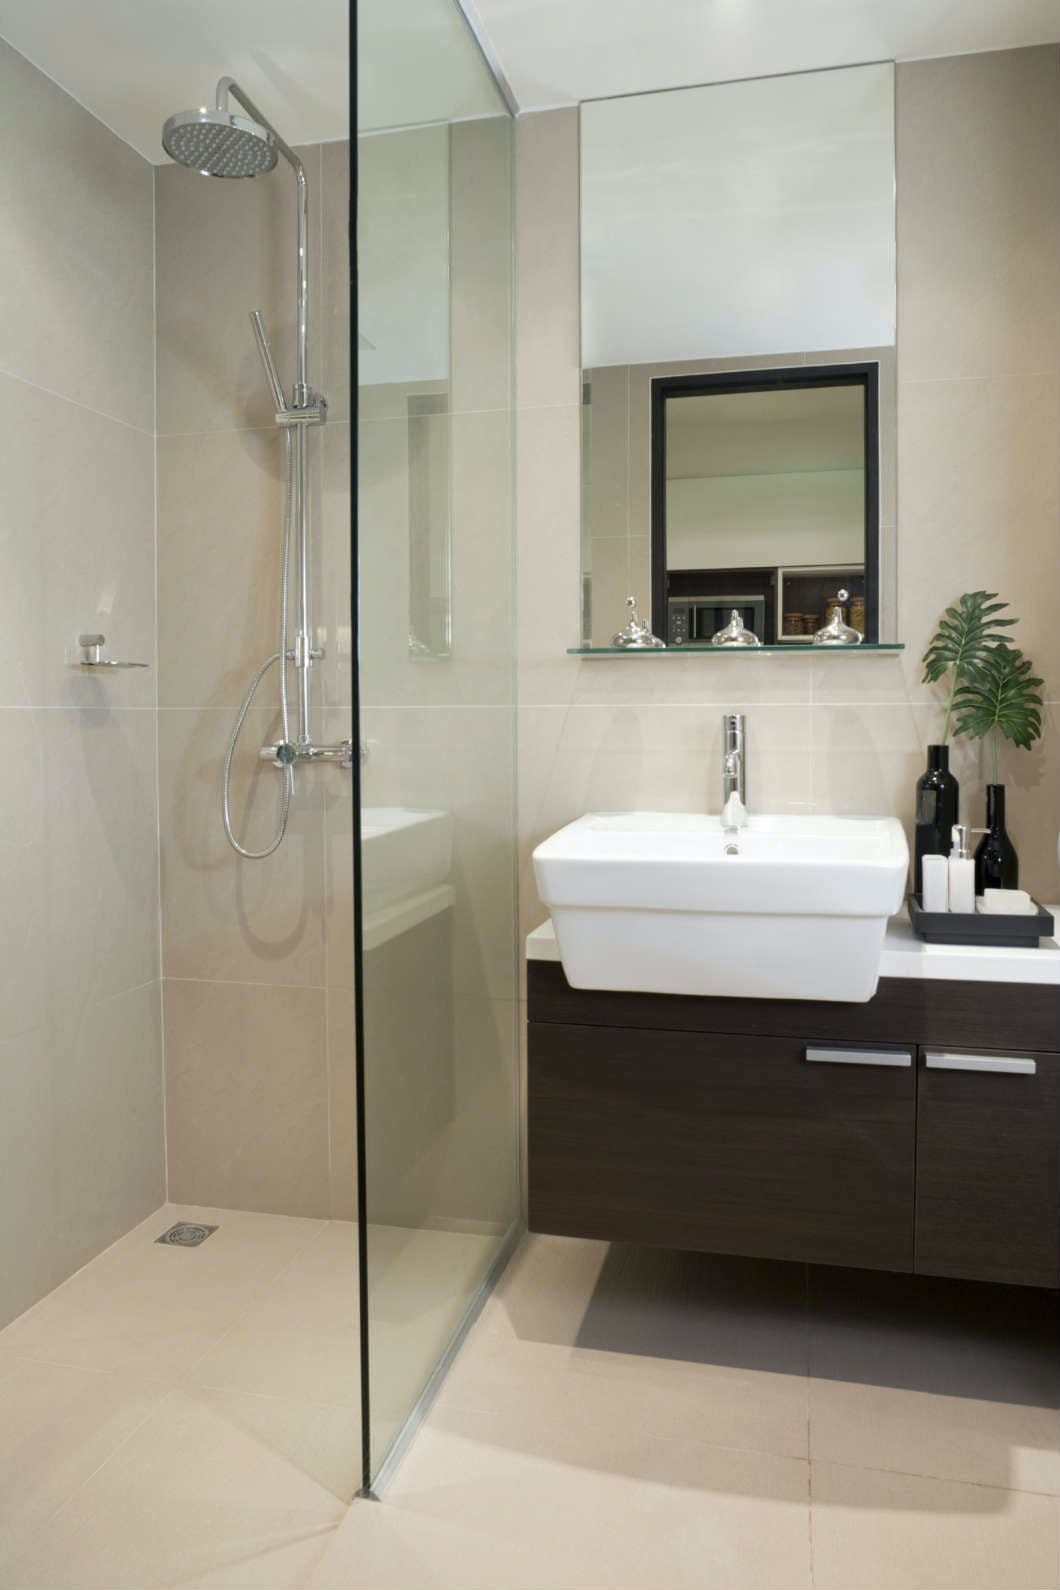 We design and install en-suite bathrooms and en-suite shower rooms - whatever your fixture preferences More Bathrooms can help.